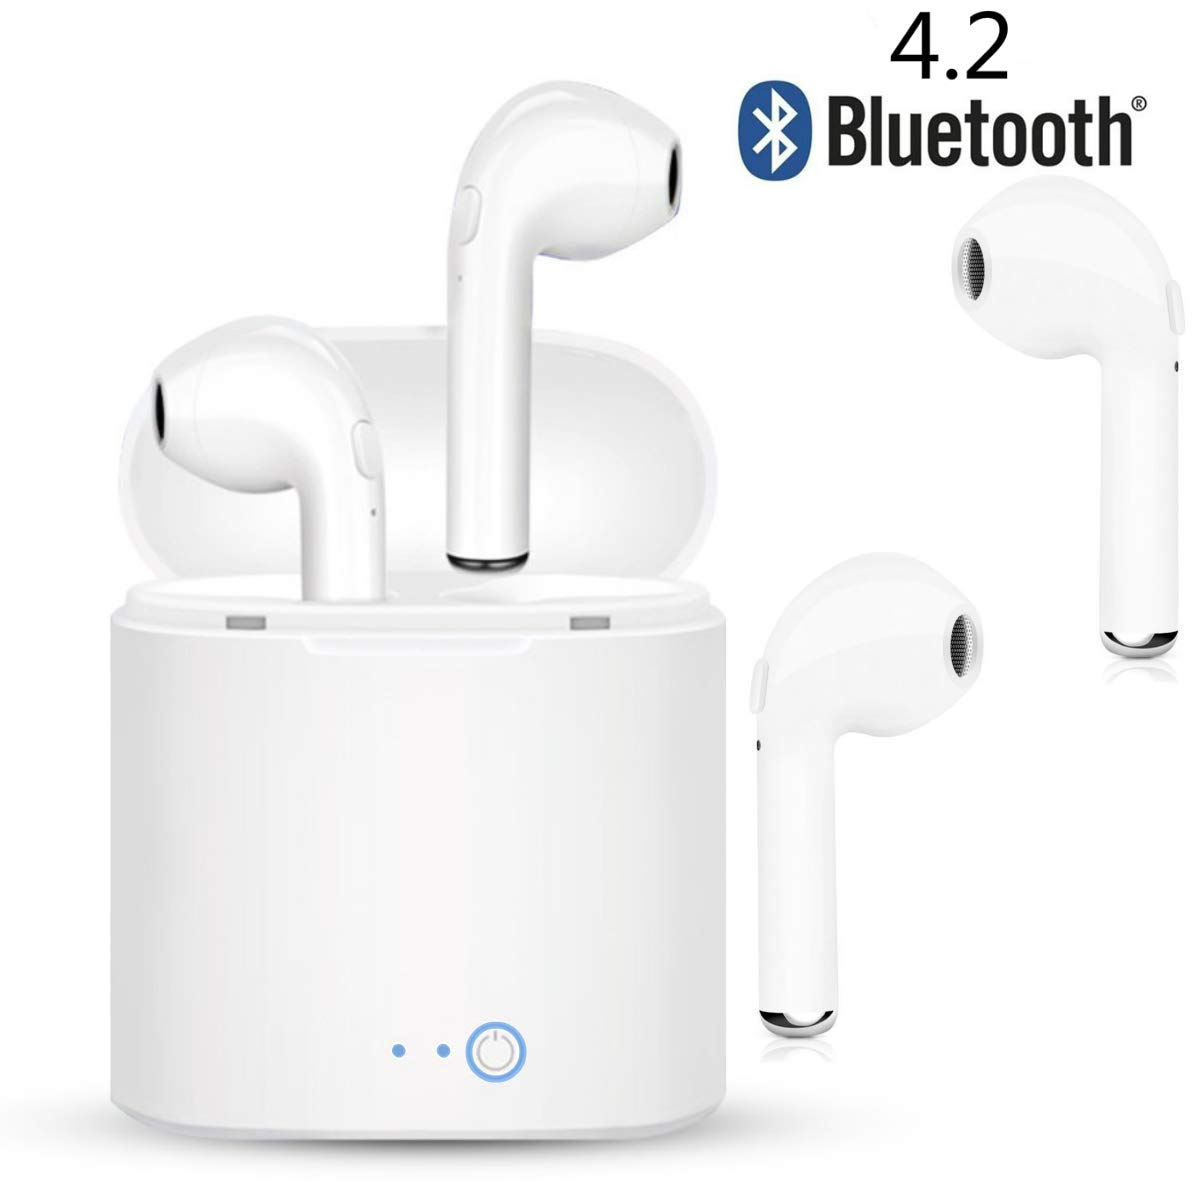 Bluetooth Headset, Wireless Earbuds, Stereo Noise Reduction Sweatproof mic Mini Sports Headphones with Charging Case. Compatible with iPhone Samsung Galaxy and Other Android Smartphones (White)